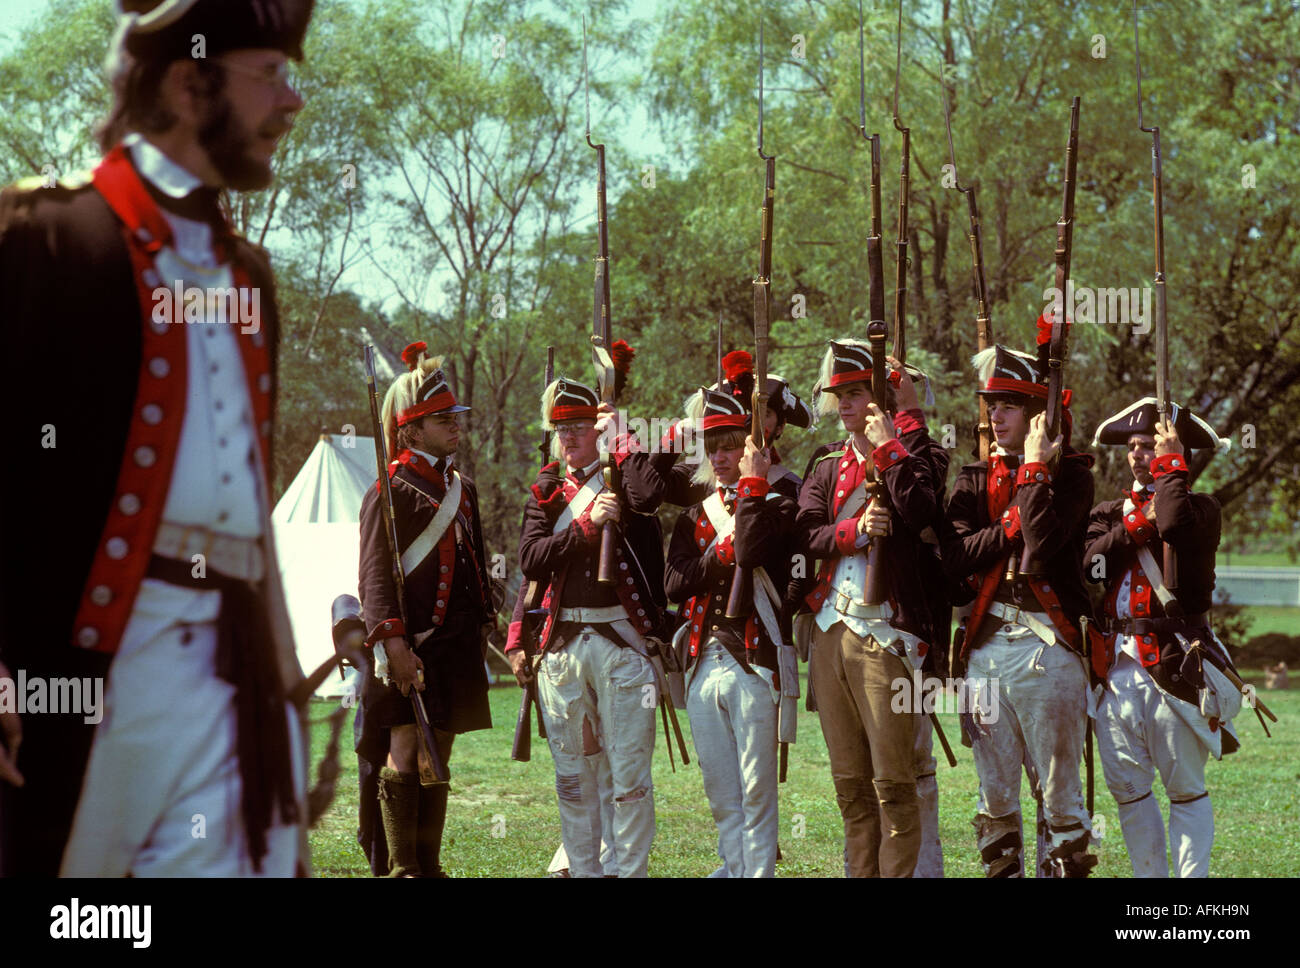 the british and american conflict during the revolutionary war Get an answer for 'what were the british and american strategies for the revolutionary war' and find homework help for other history questions at enotes.